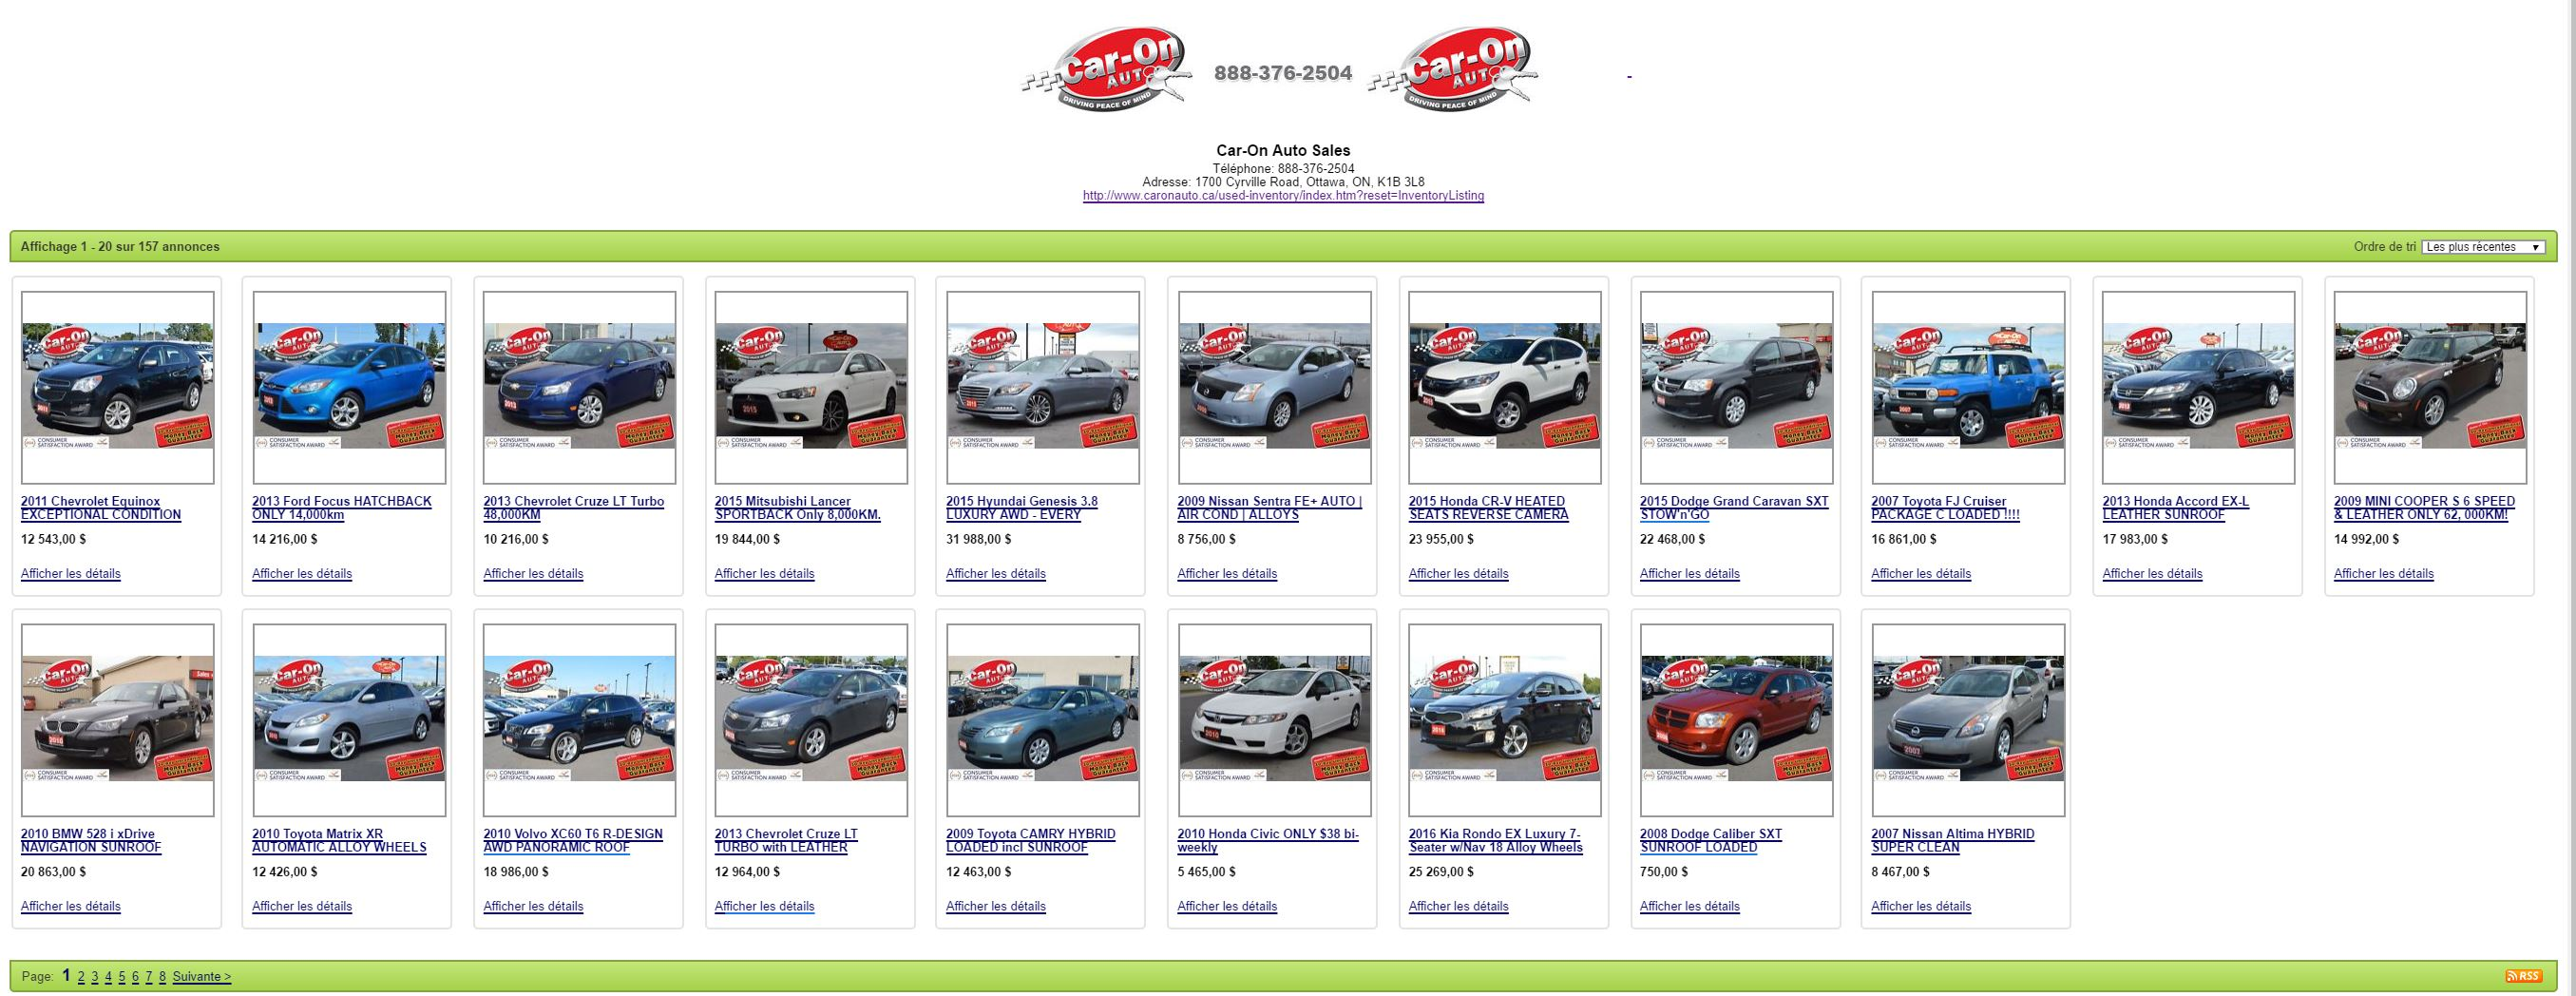 used cars kijiji ottawa gatineau Car-On